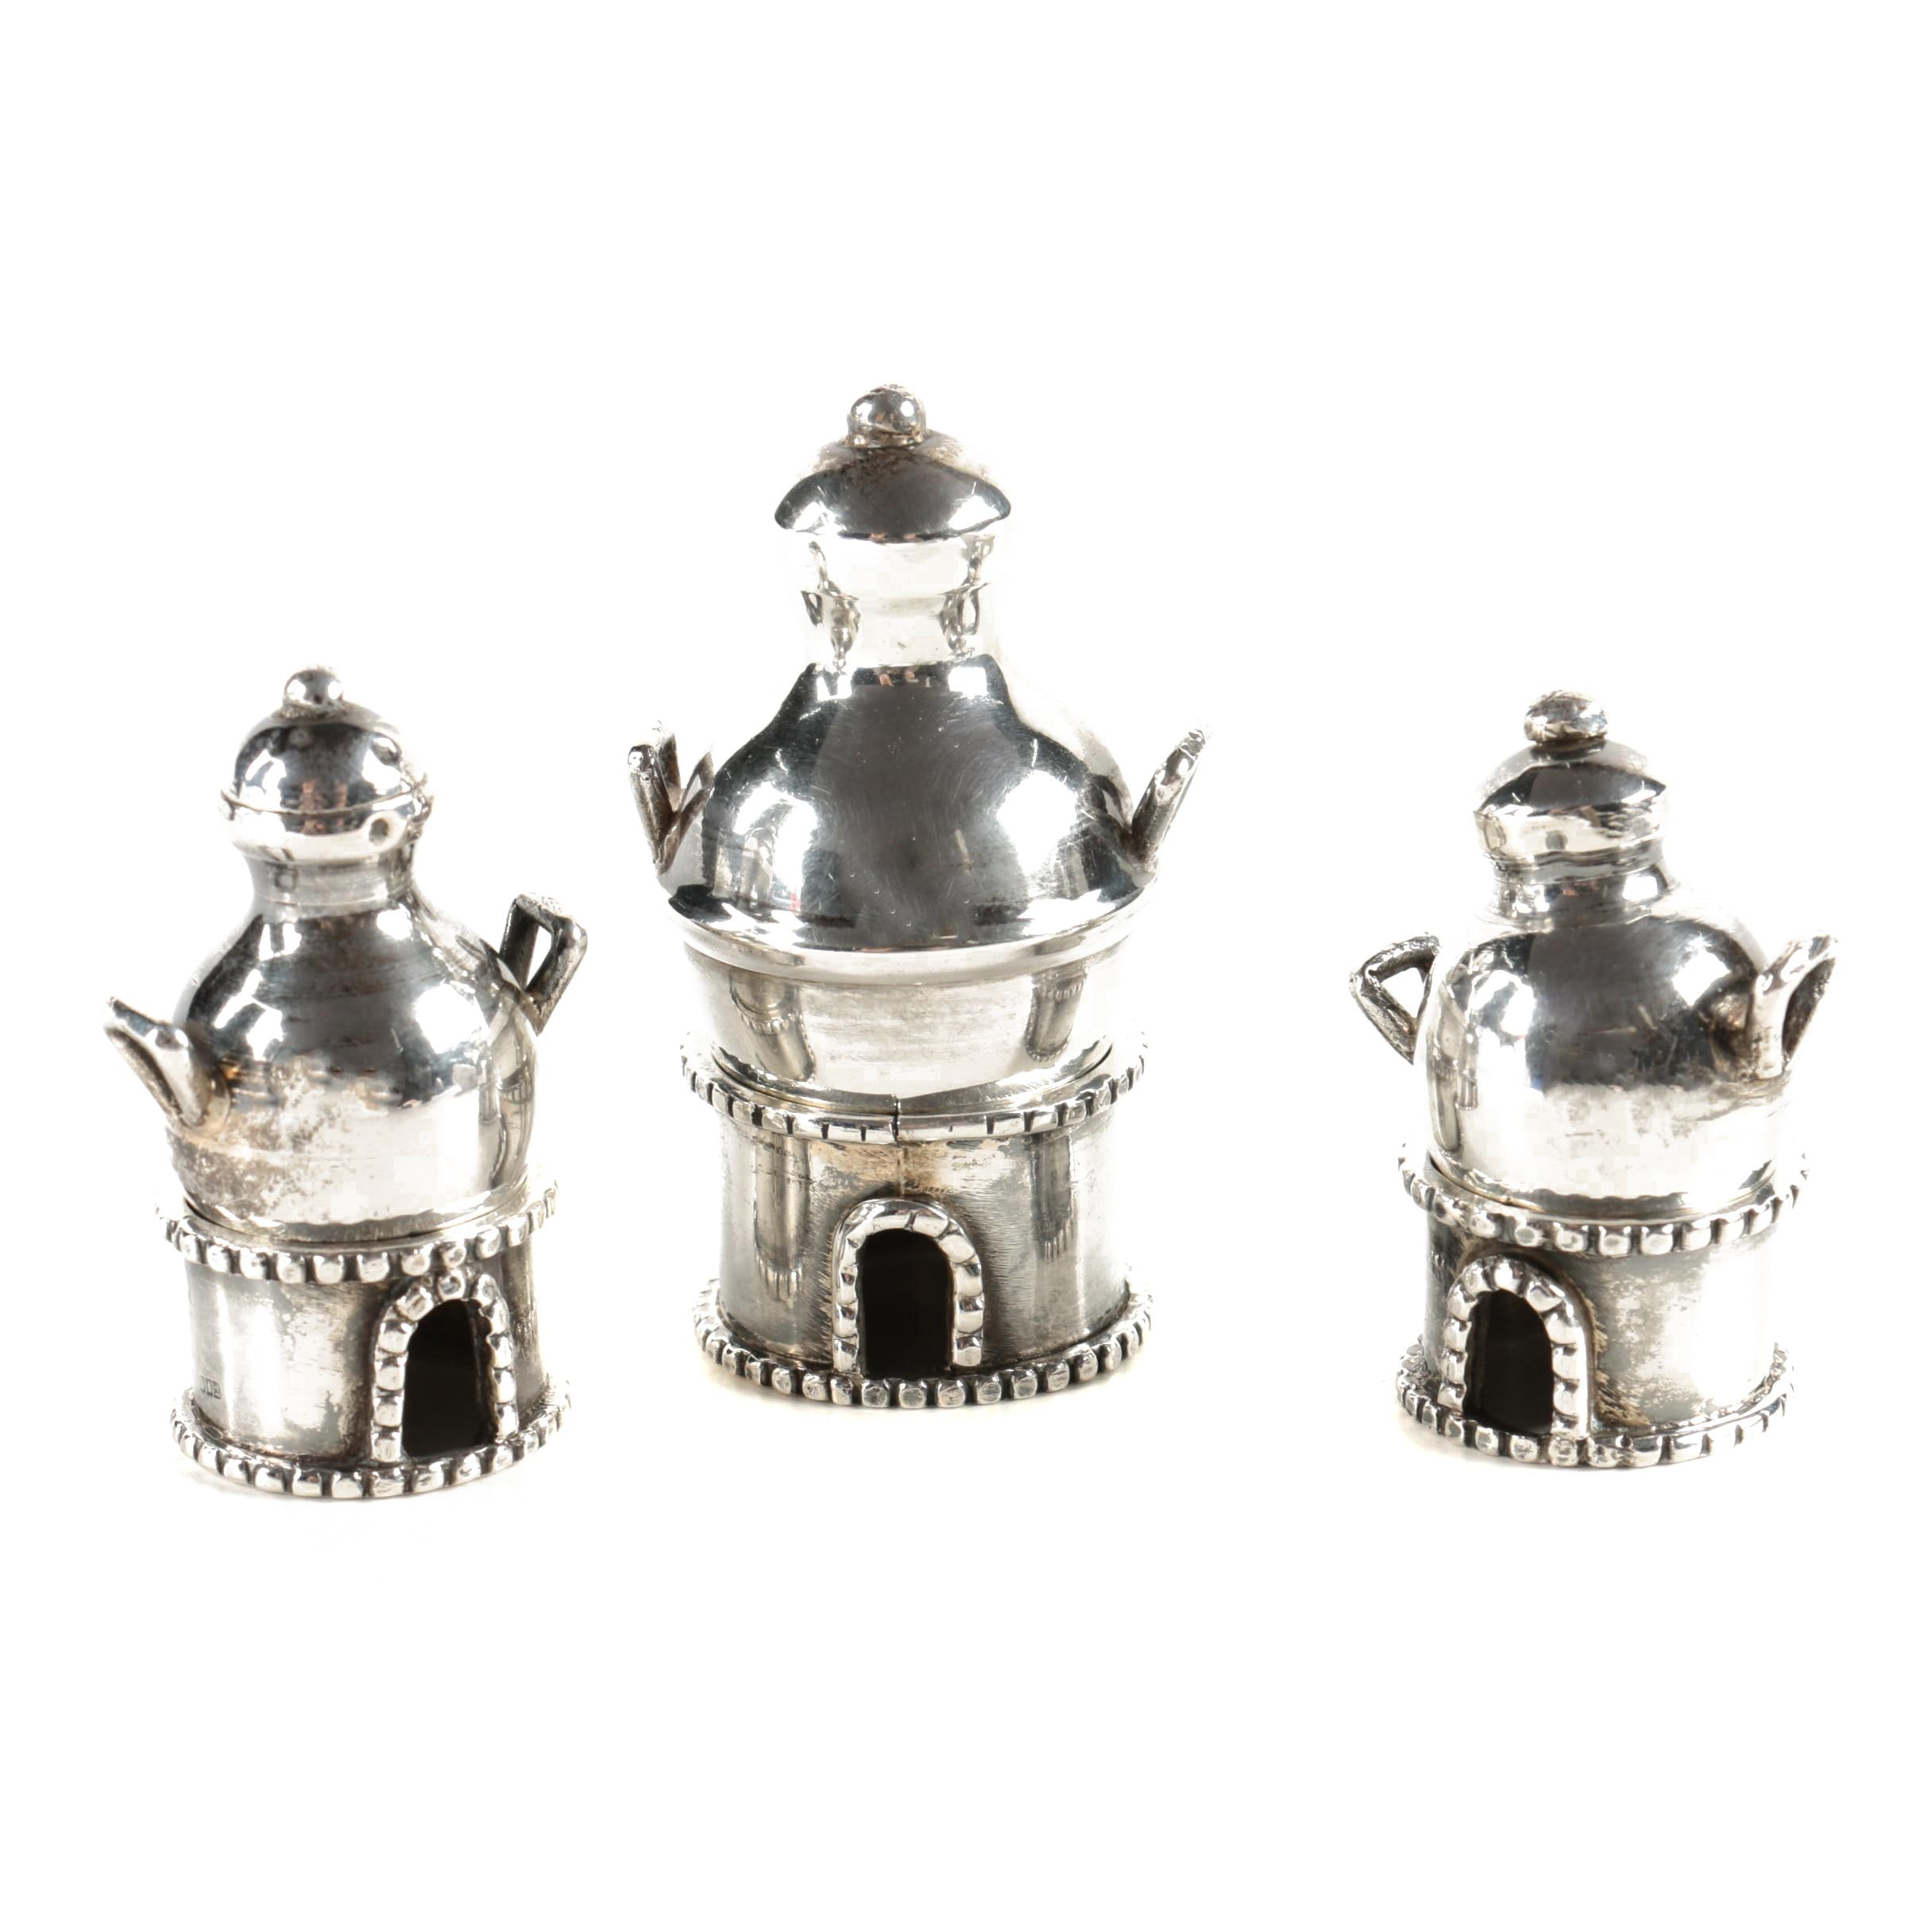 1920s Egyptian 800 Silver Condiment Jars and Napkin Rings